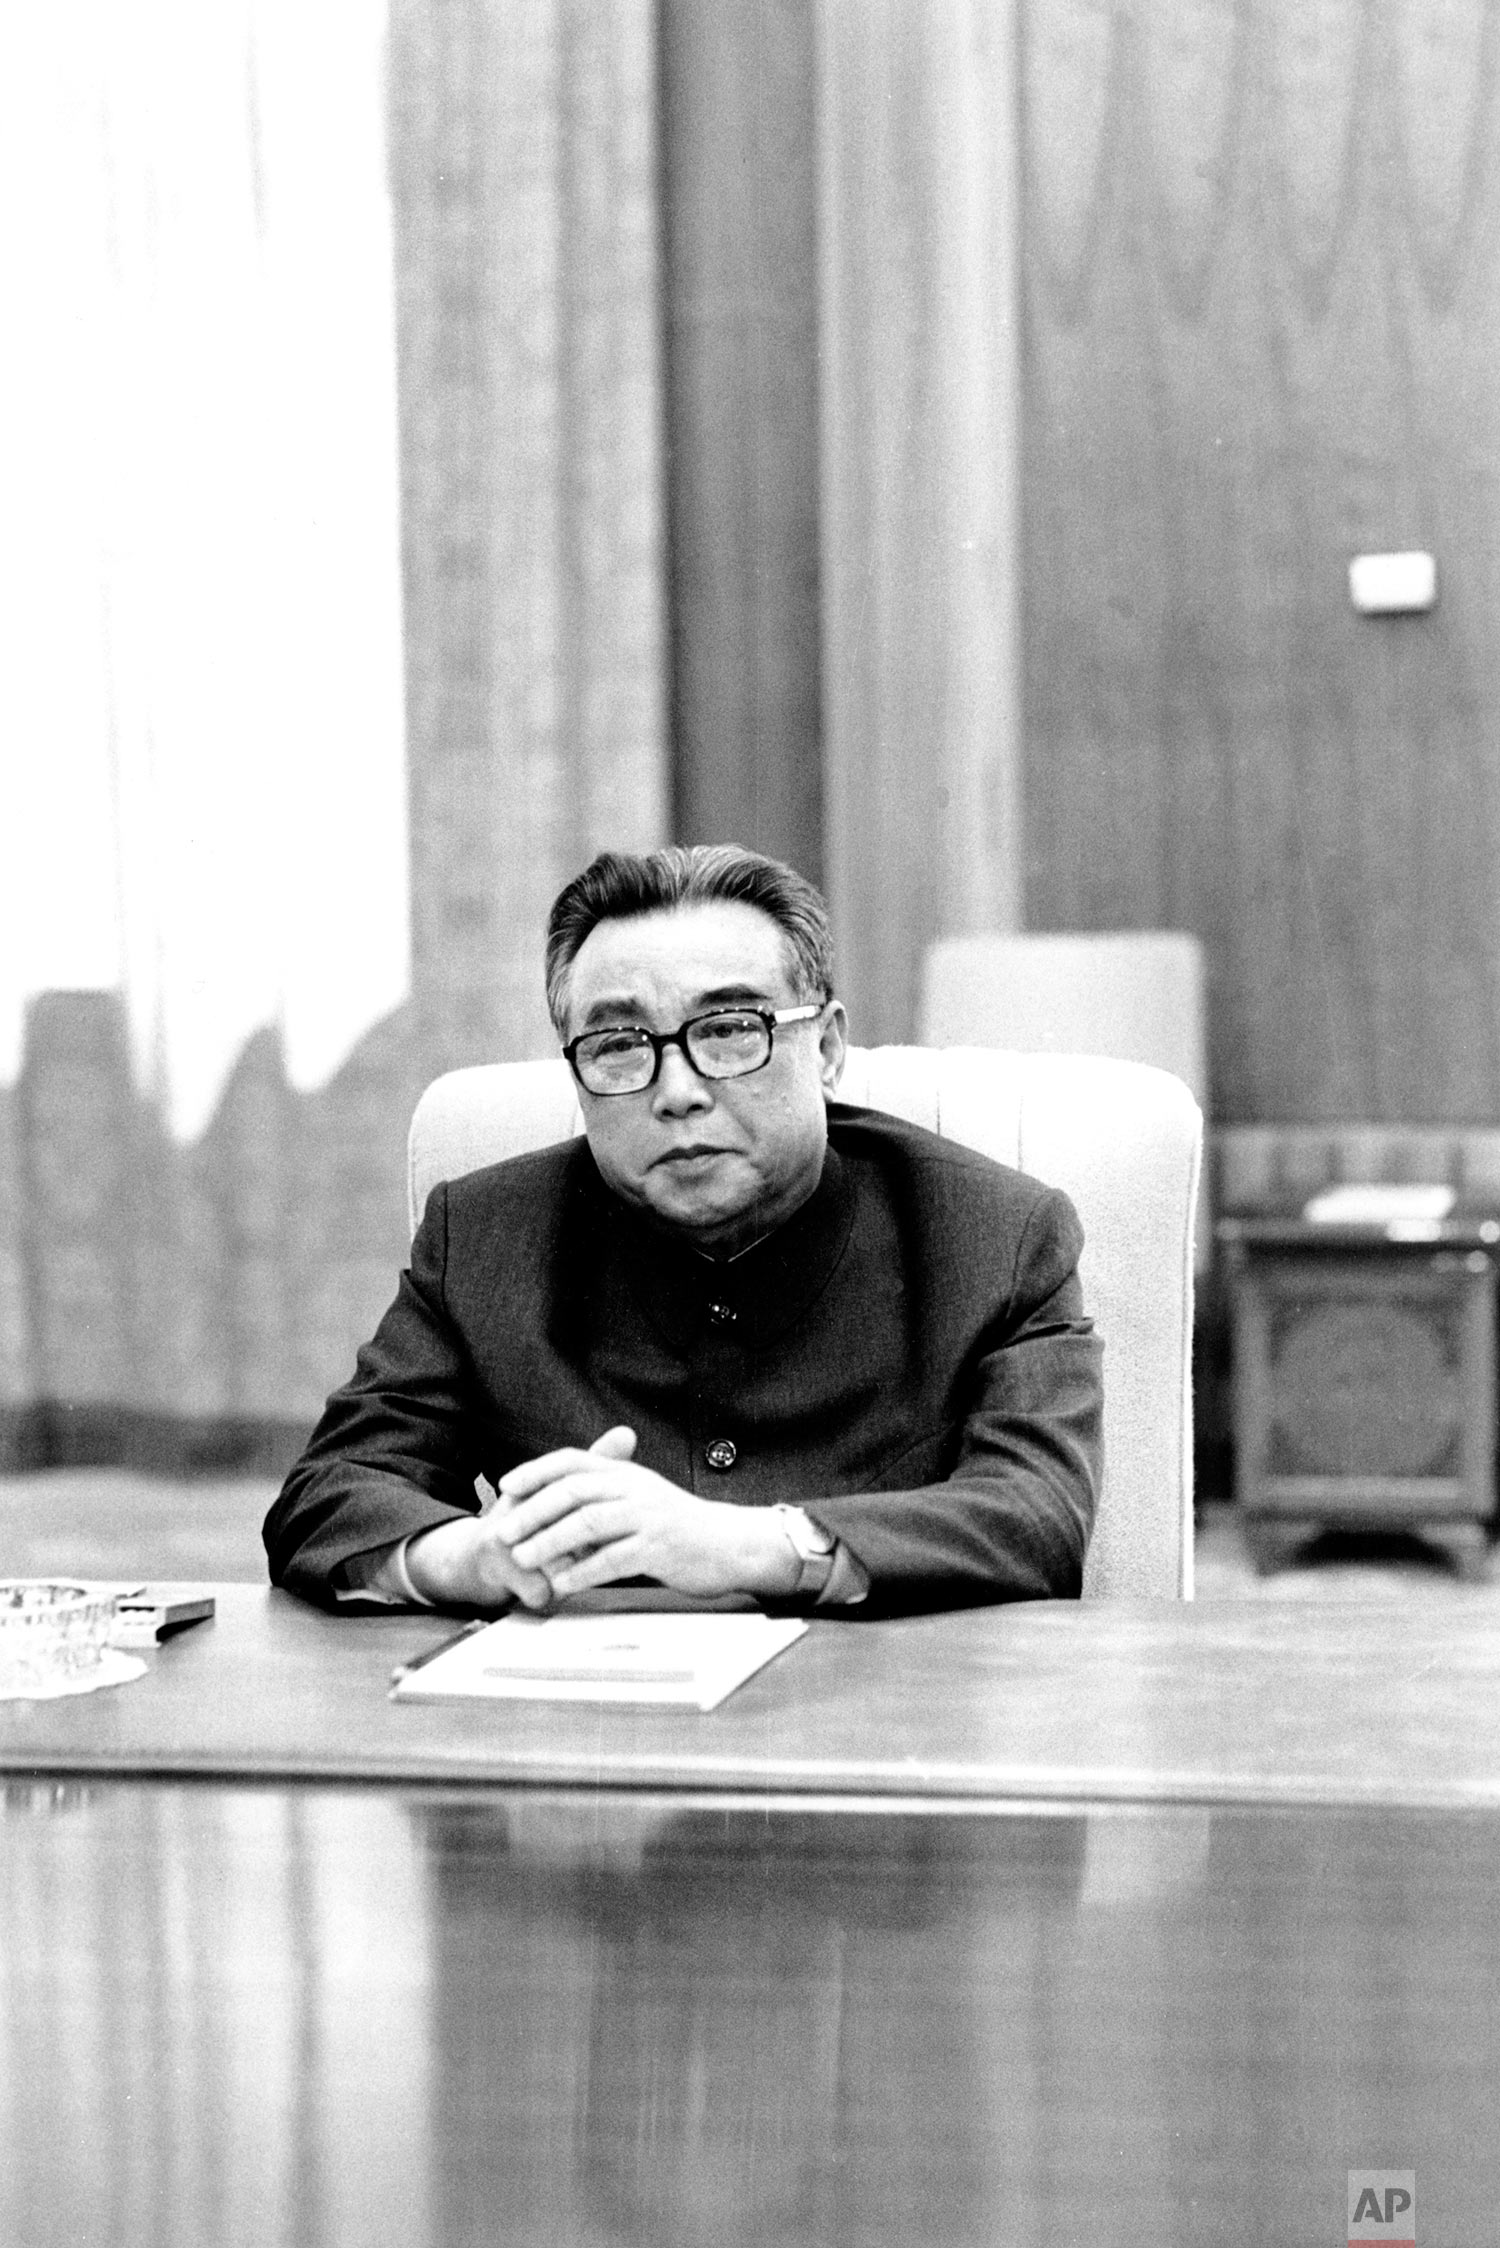 North Korean leader Kim Il Sung sits for a portrait in Pyongyang, North Korea, in May 1979. (AP Photo/Peter Arnett)